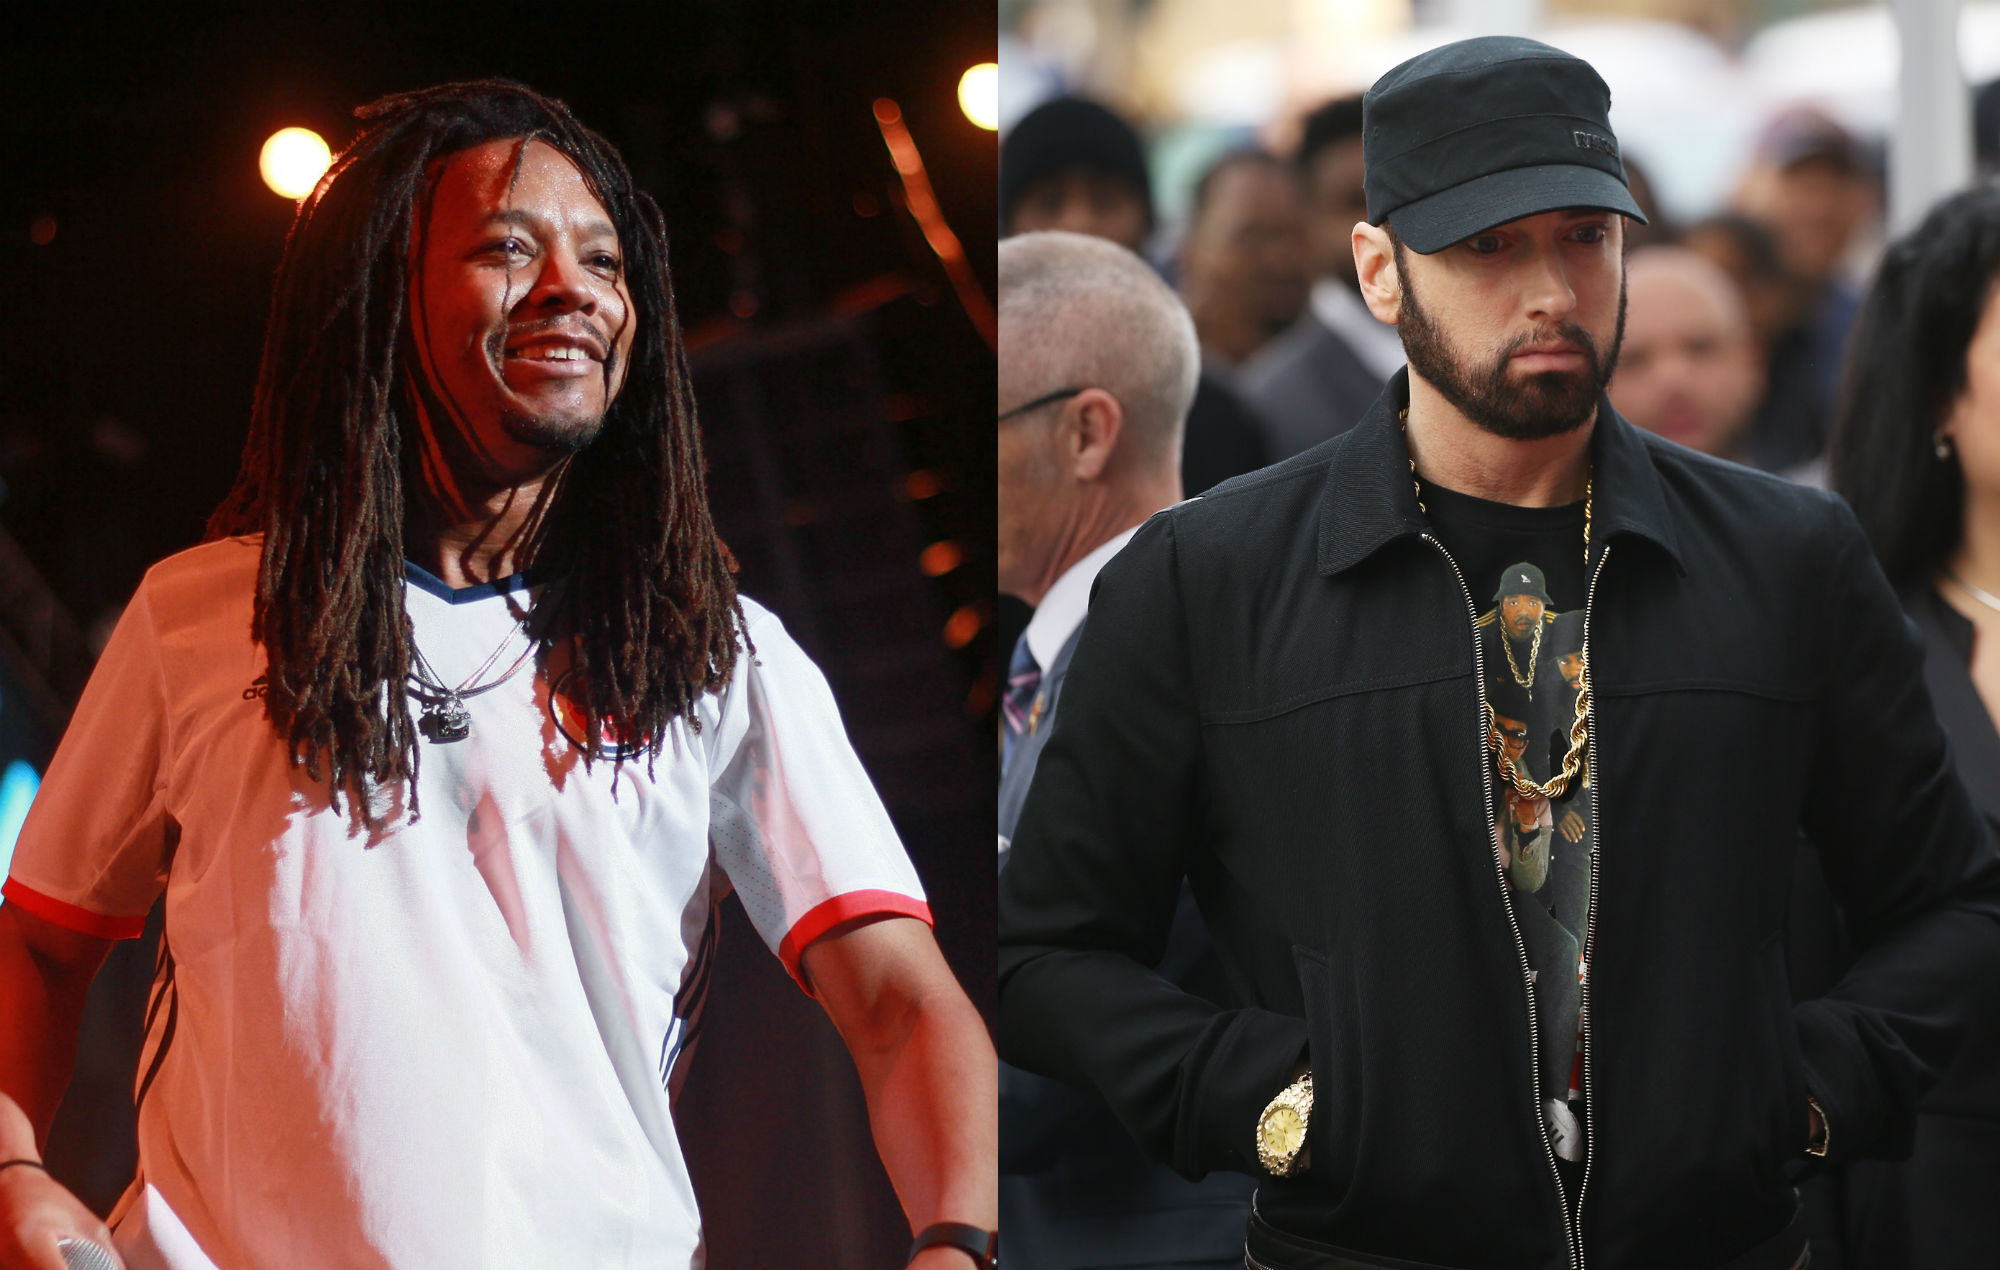 Listen to Lupe Fiasco re-work Eminem's 'Stan' to hit back at critical fan - EpicNews